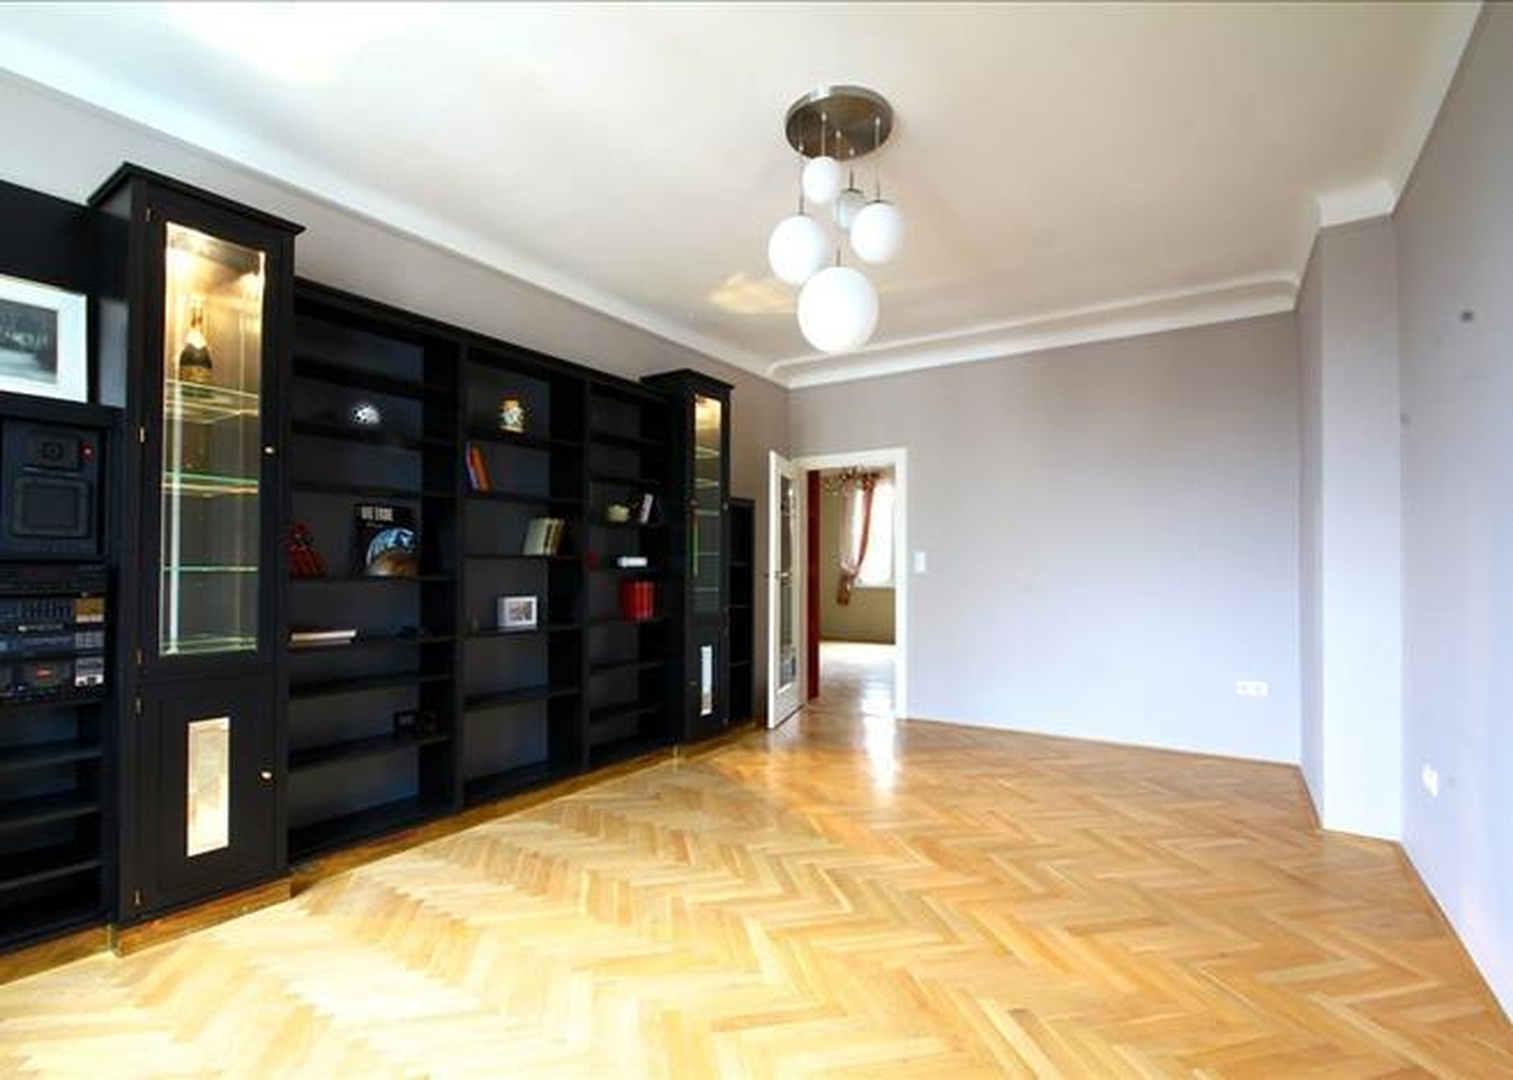 Centrally located city apartment for sale